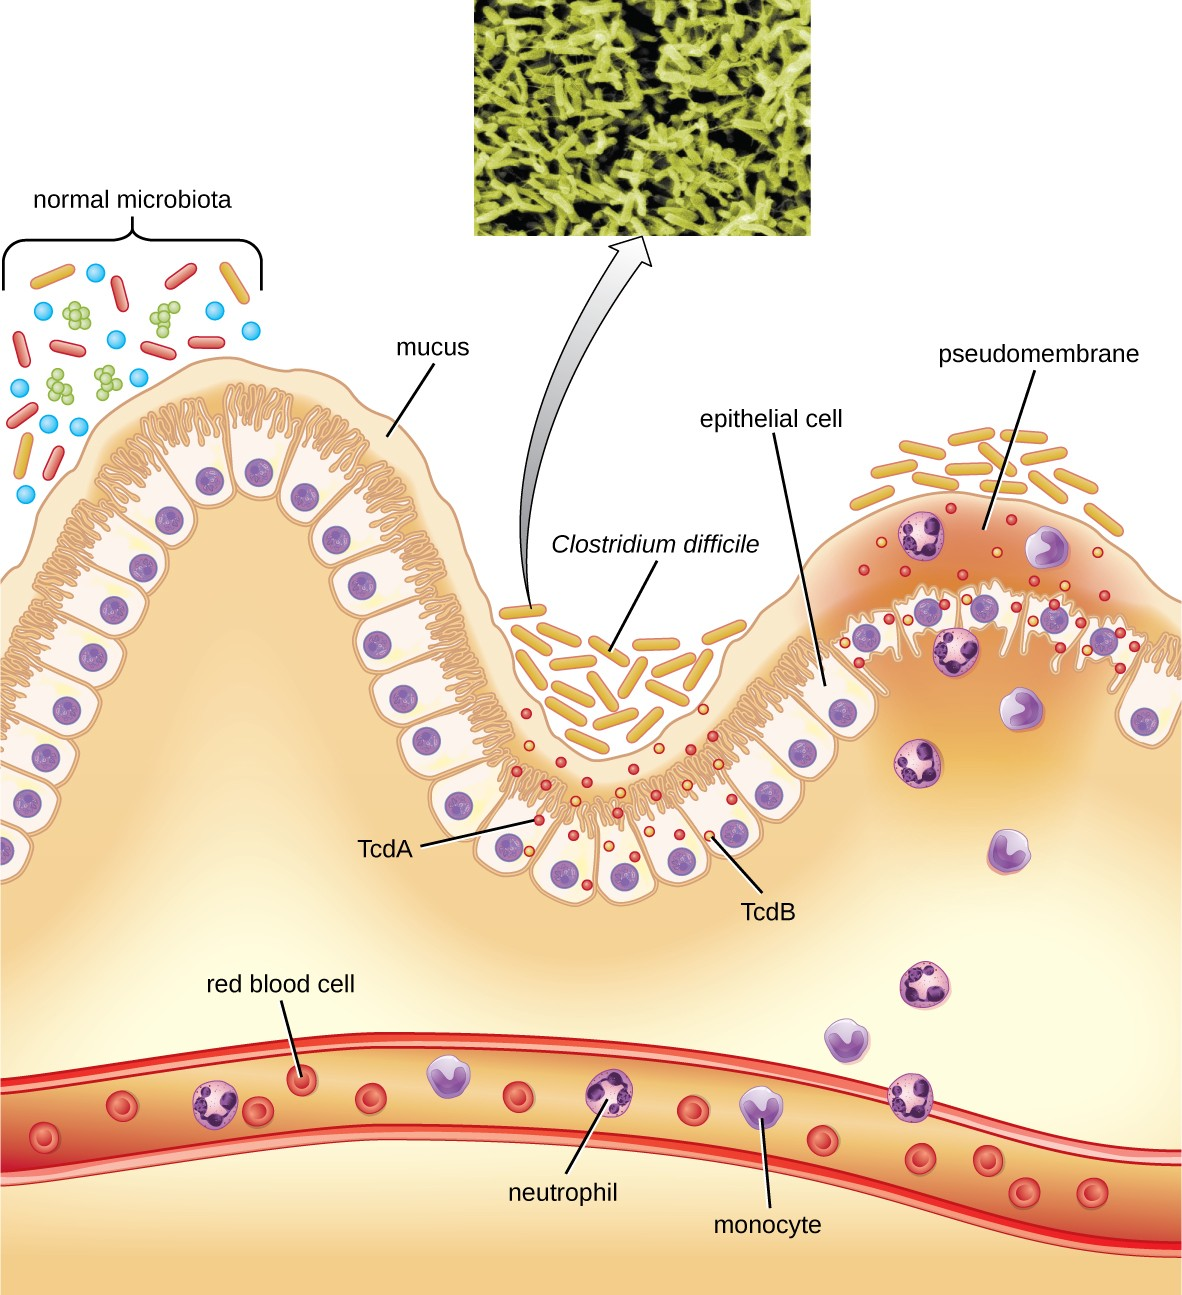 Clostridium difficile is able to colonize the mucous membrane of the colon when the normal microbiota is disrupted. The toxins TcdA and TcdB trigger an immune response, with neutrophils and monocytes migrating from the bloodstream to the site of infection. Over time, inflammation and dead cells contribute to the development of a pseudomembrane.